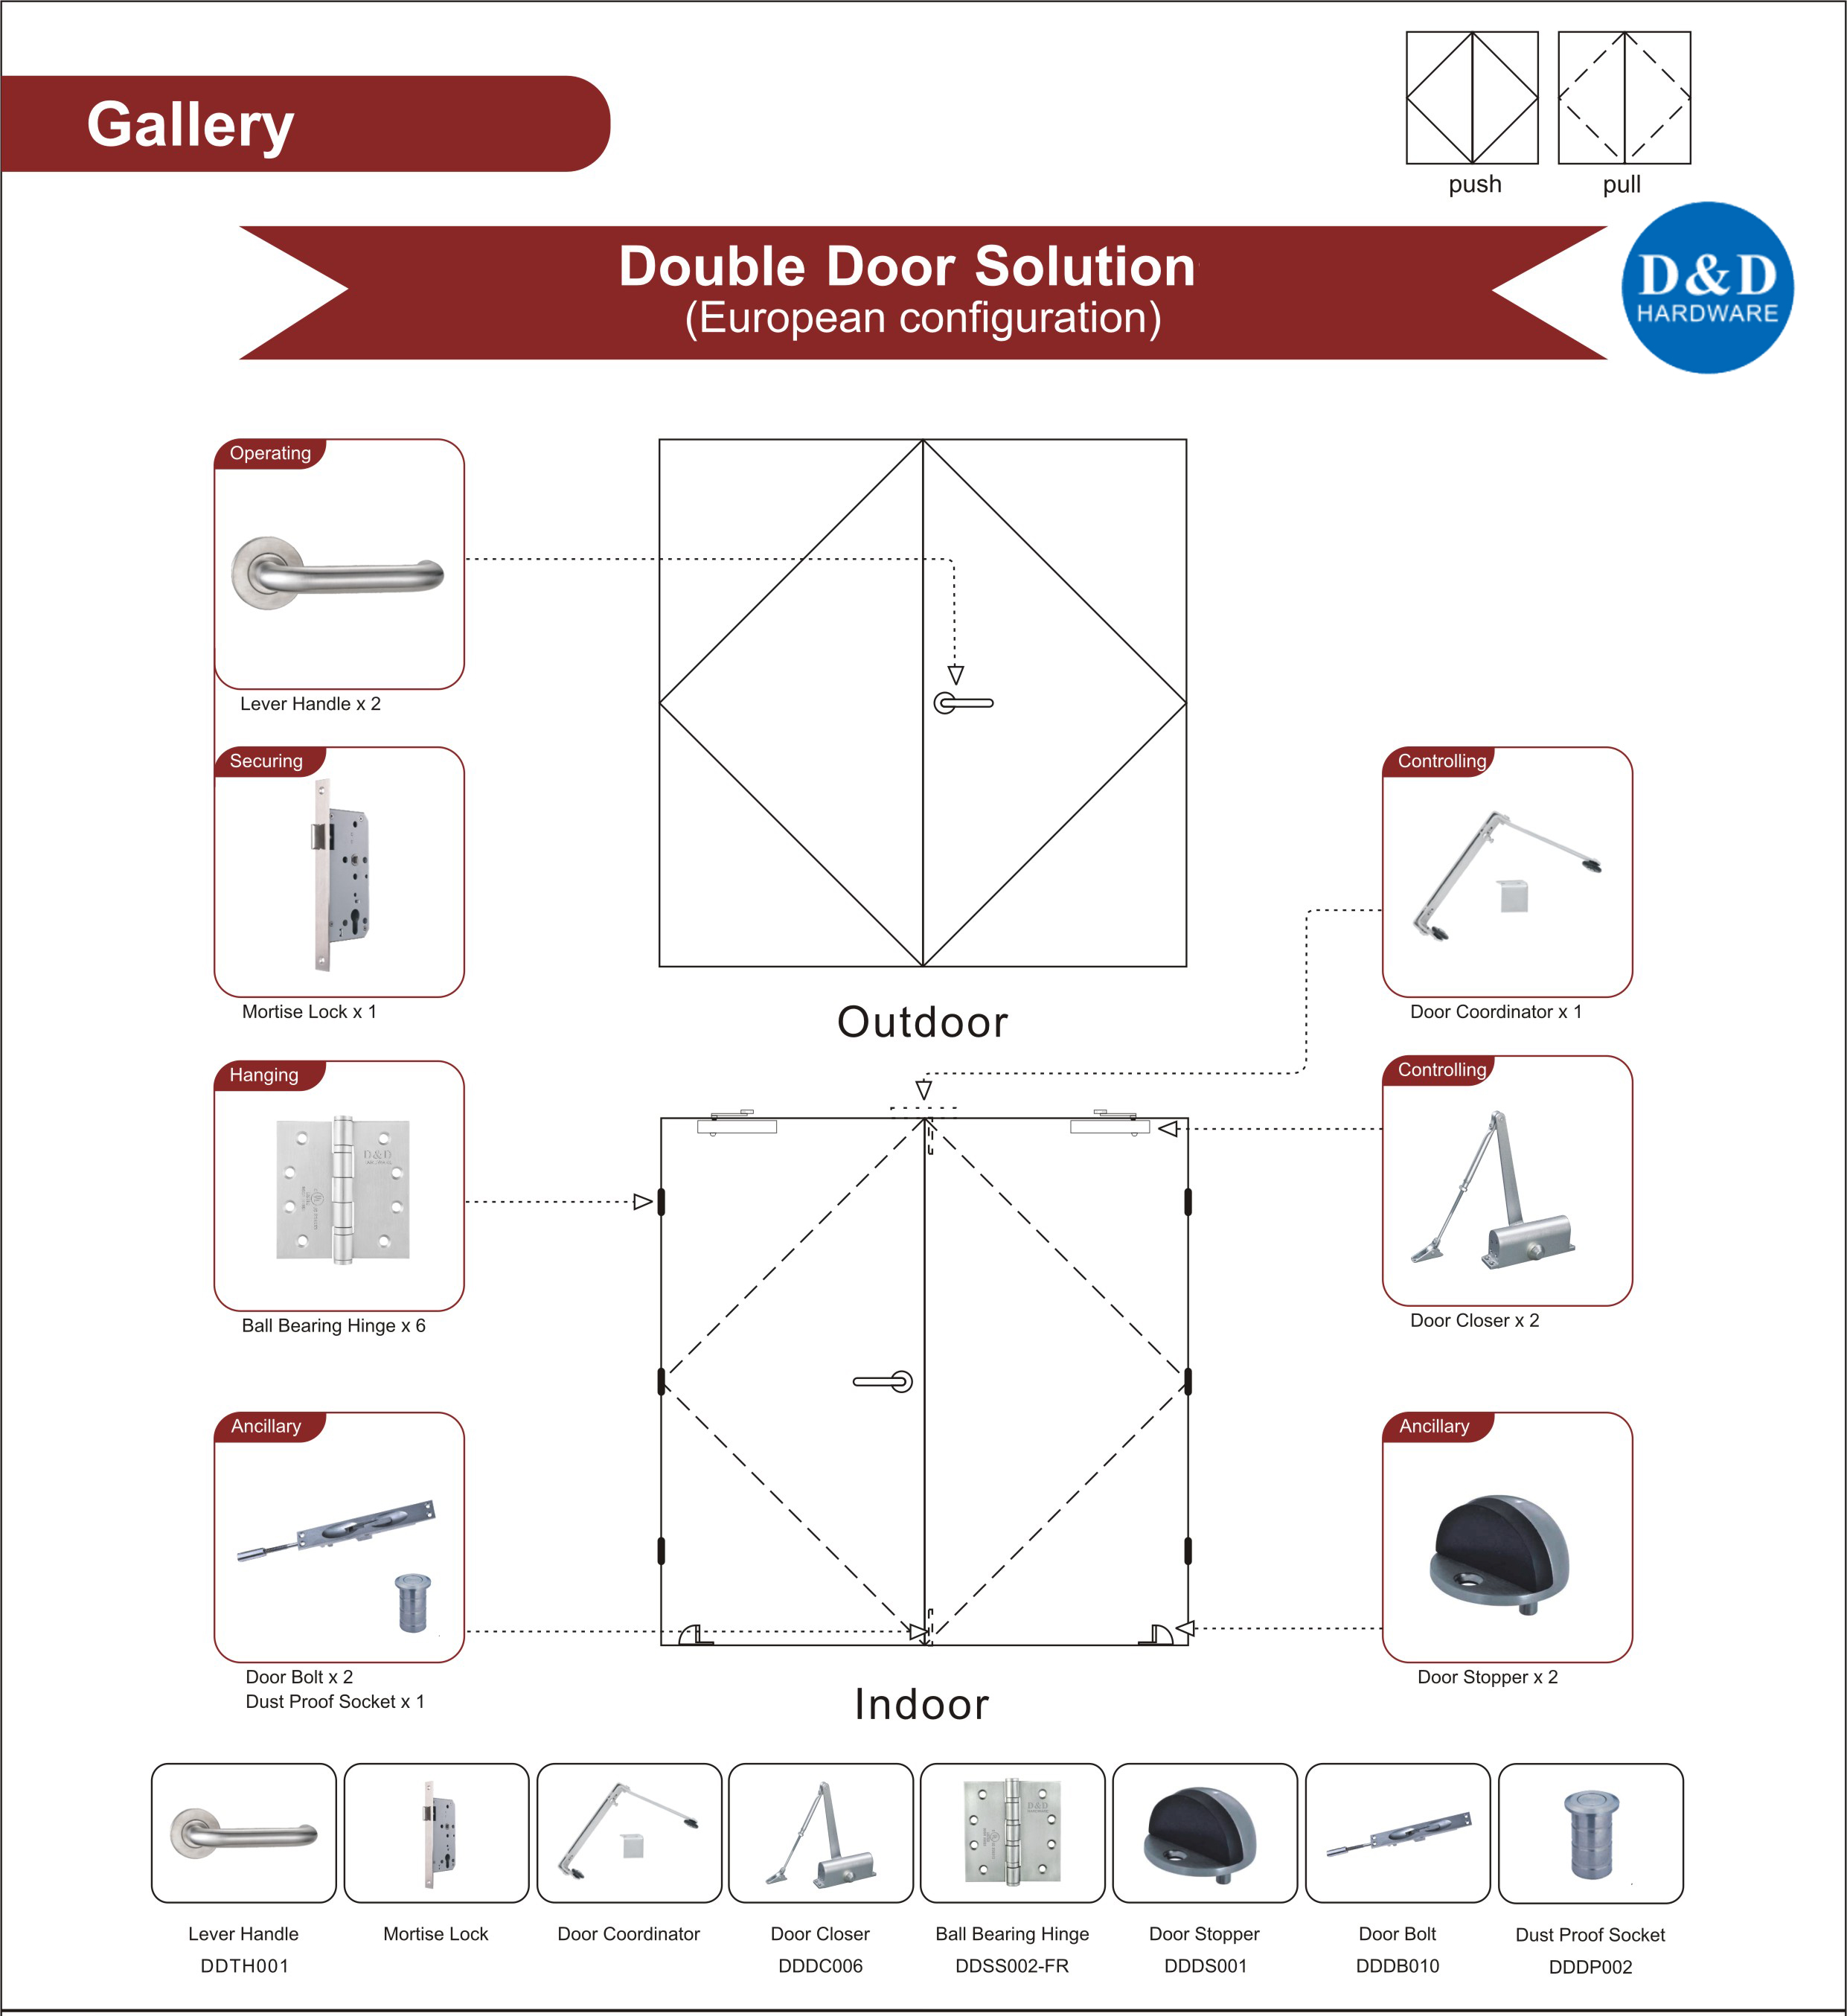 Fire Rated Door Ironmongery for Gallery Double Door